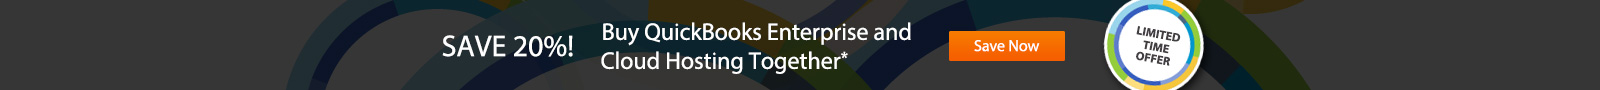 Save 20%! Buy QuickBooks Enterprise and Cloud Hosting together